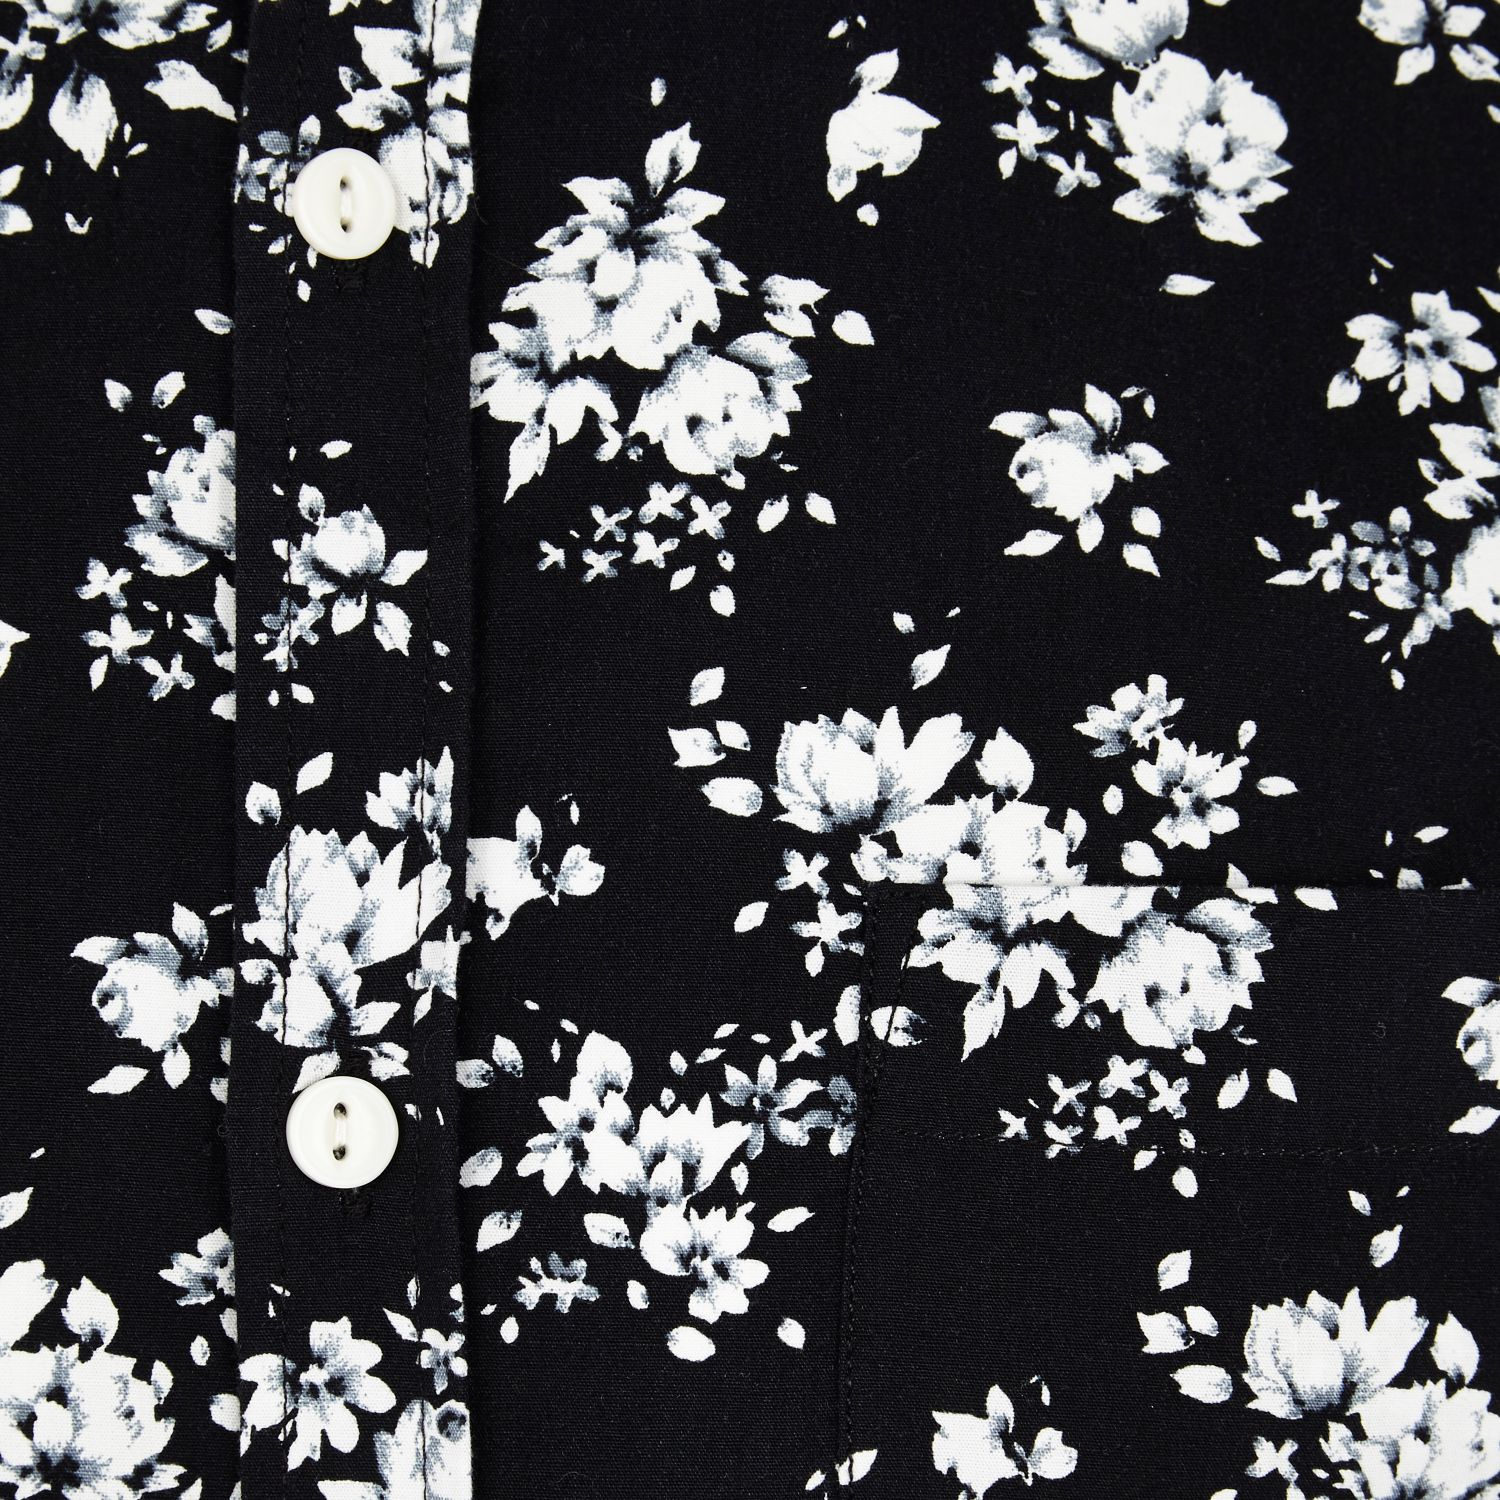 River island black floral print short sleeve shirt in white for men gallery mightylinksfo